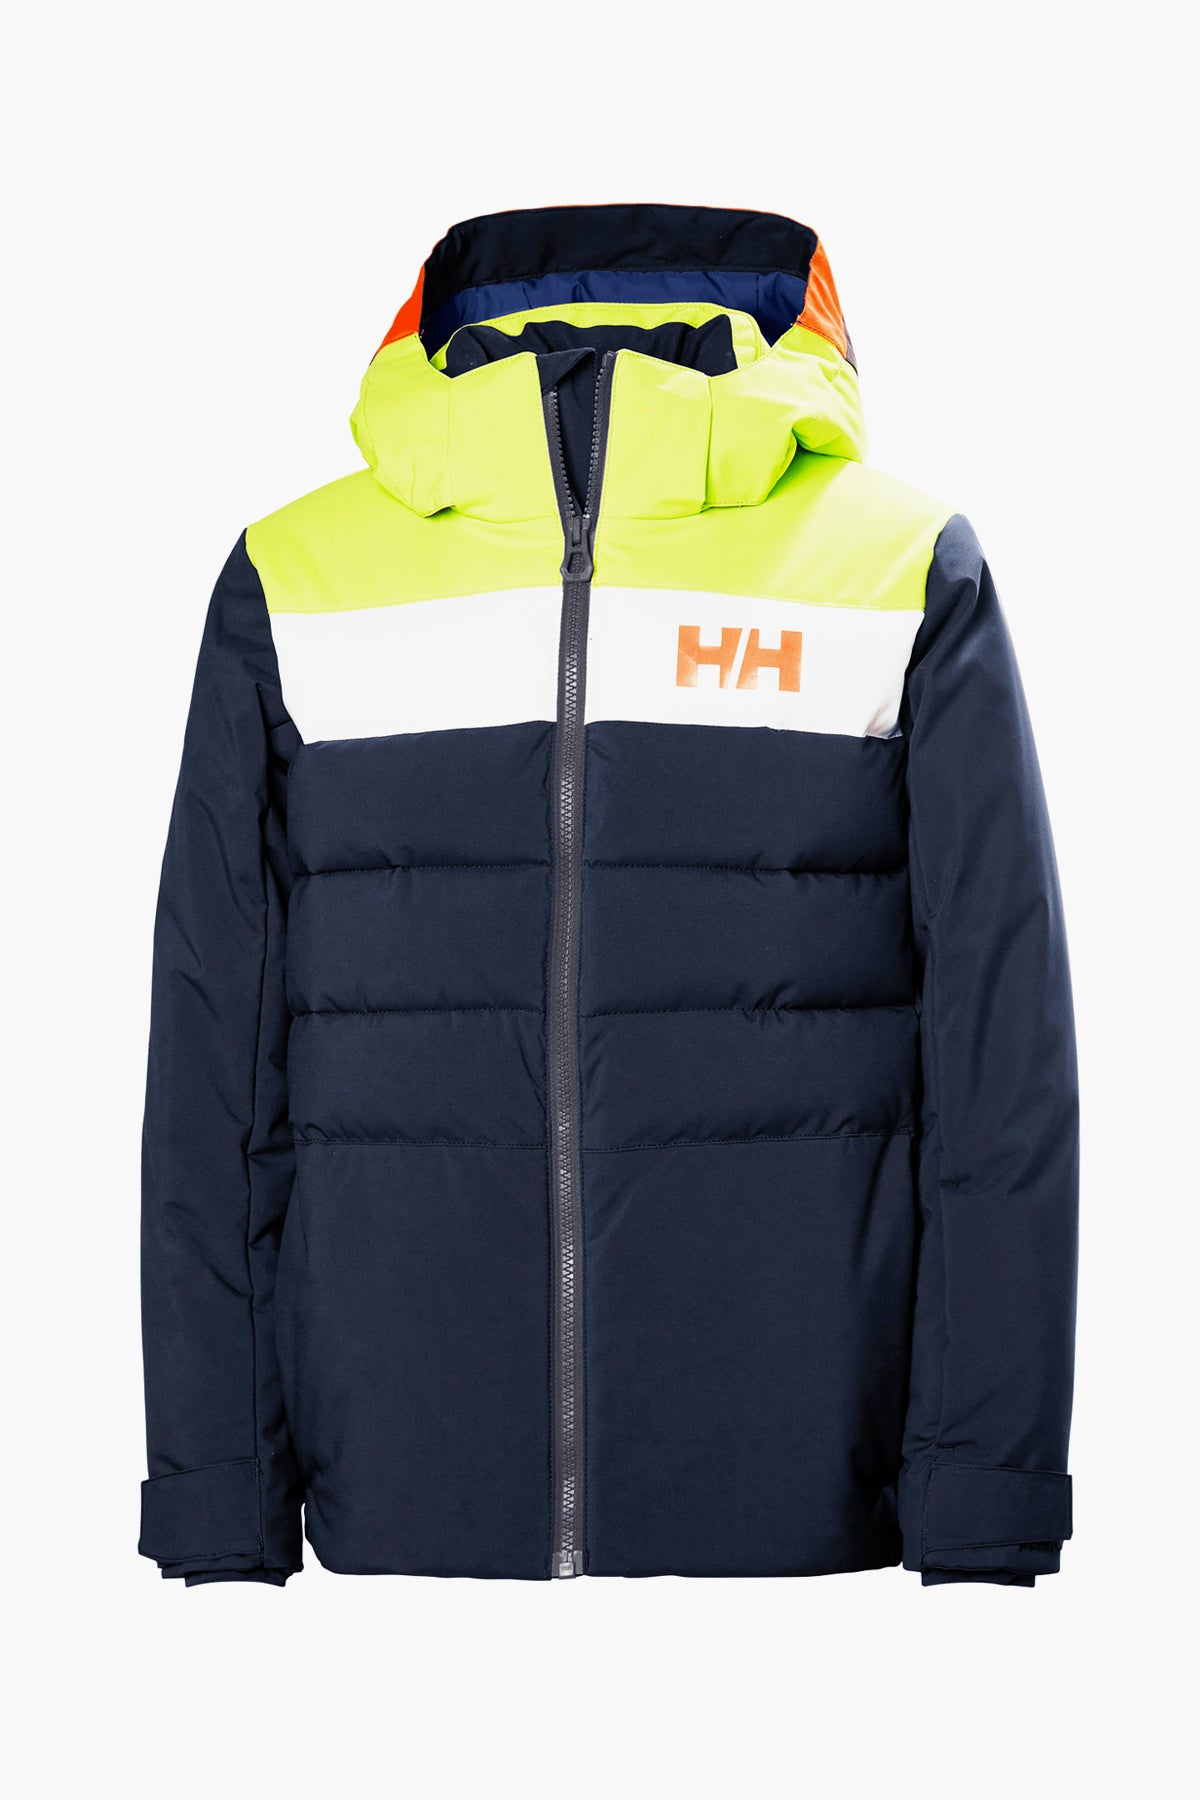 Helly Hansen Jr Cyclone Boys Jacket (Size 12 left)